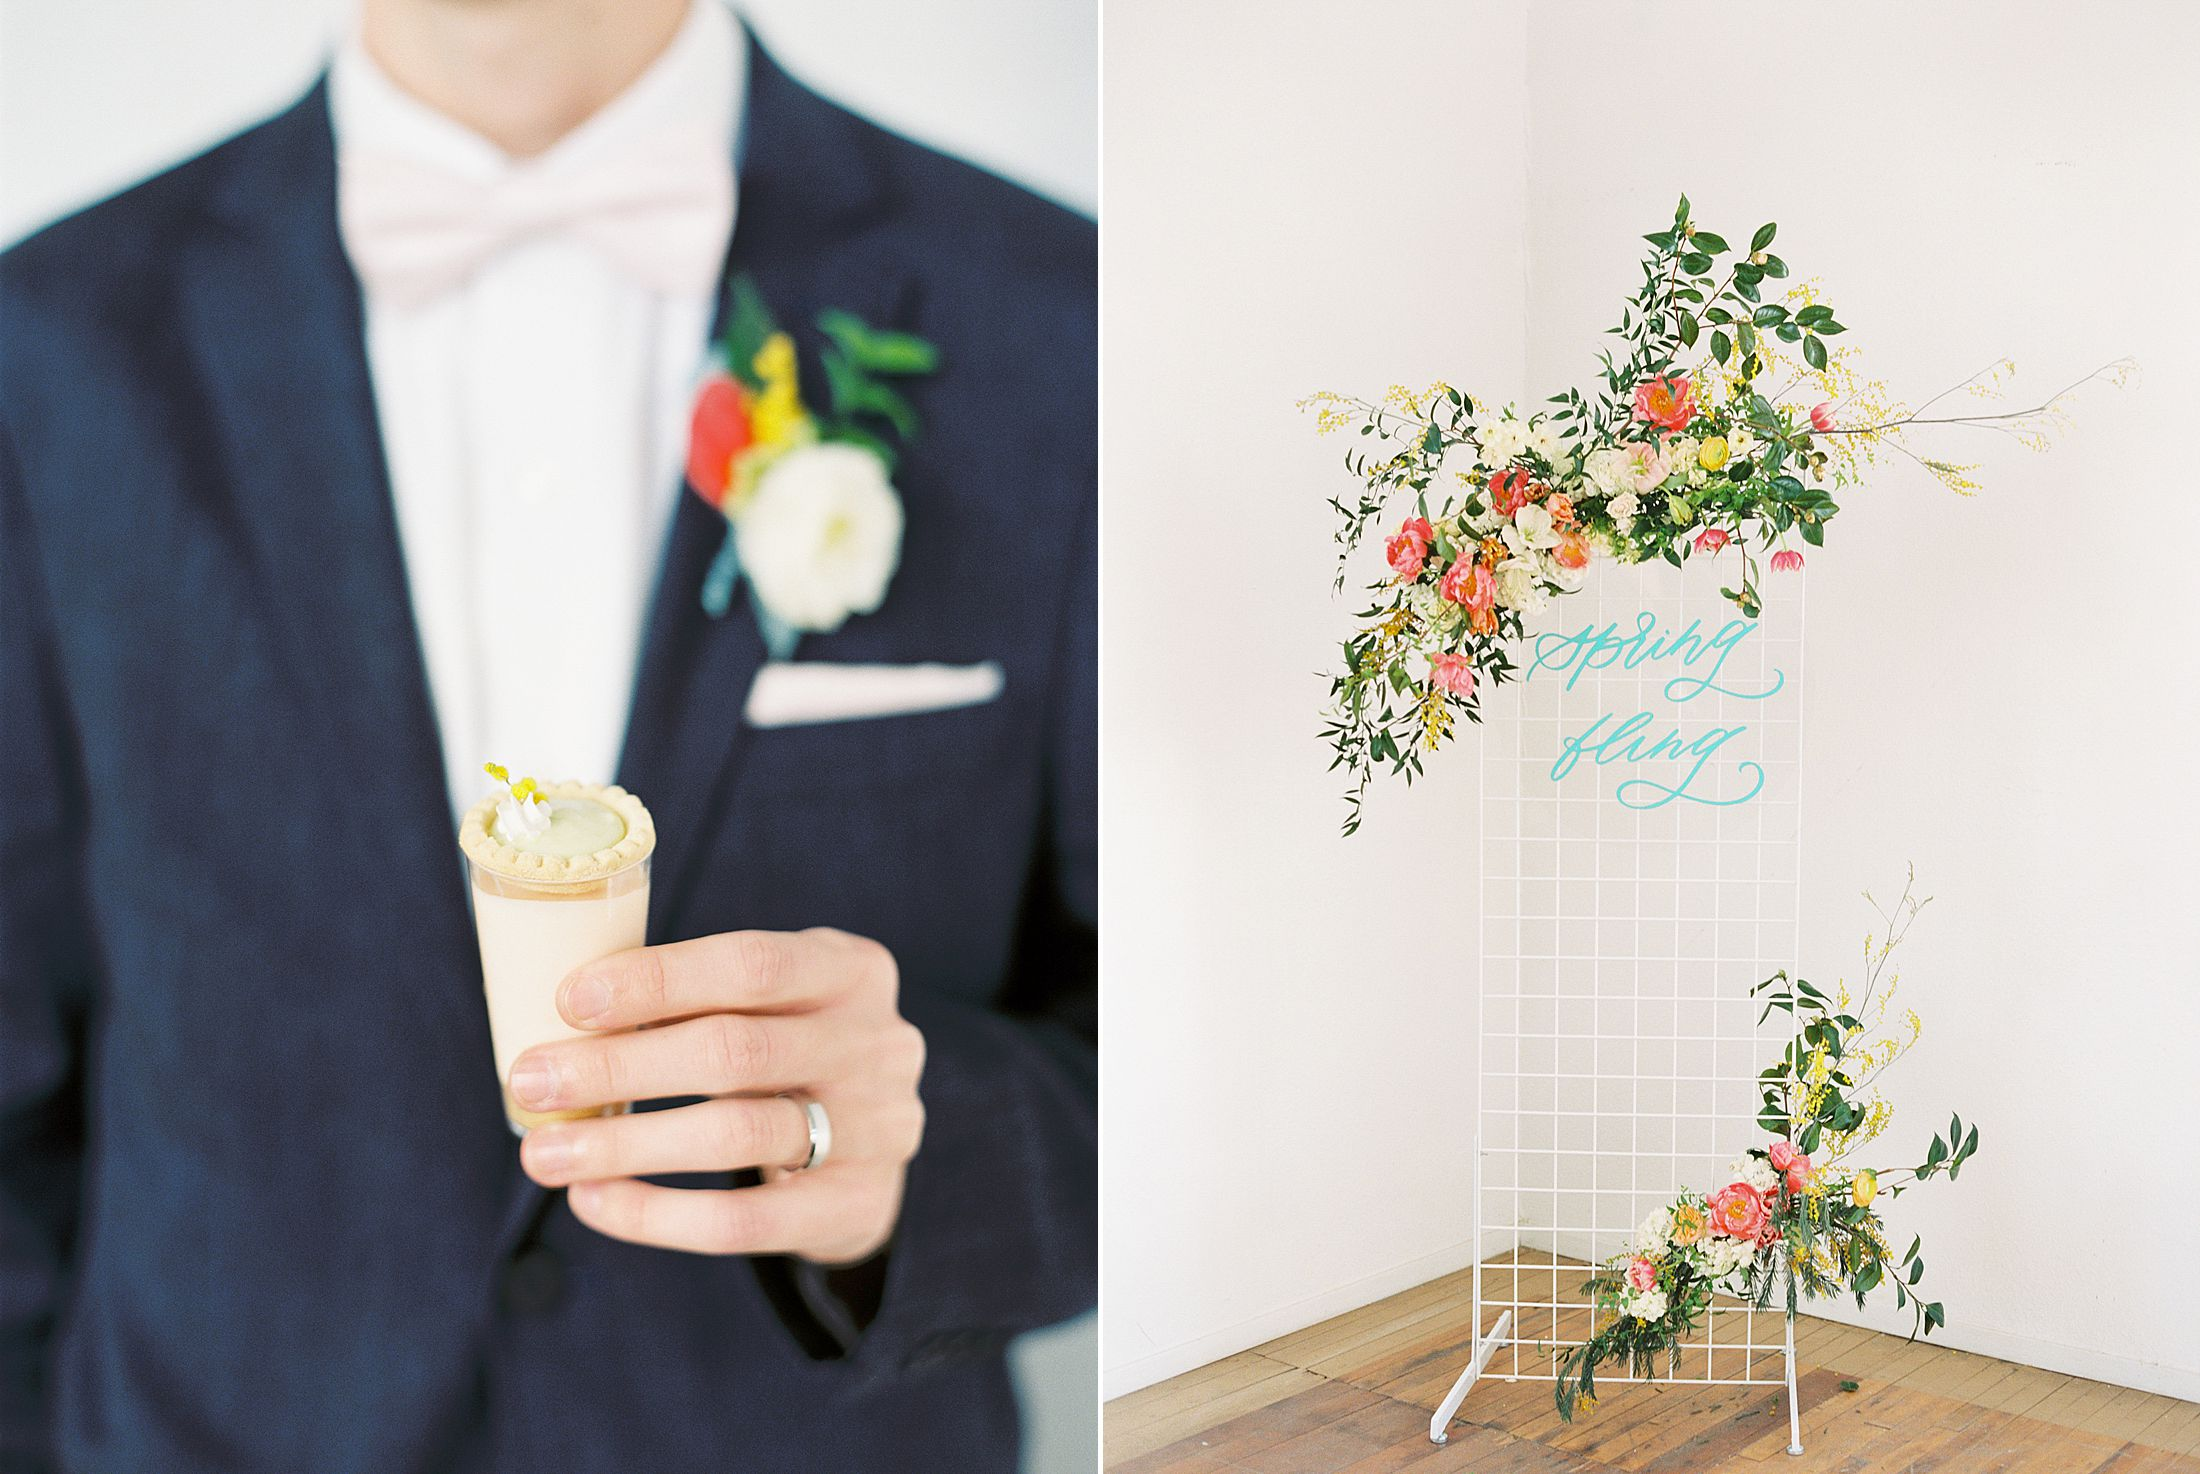 Bay Area Spring Wedding Inspiration - Ashley Baumgartner - Inspired By This - Party Crush Studio and Lens of Lenox Videography - Bay Area Wedding Photography_0015.jpg